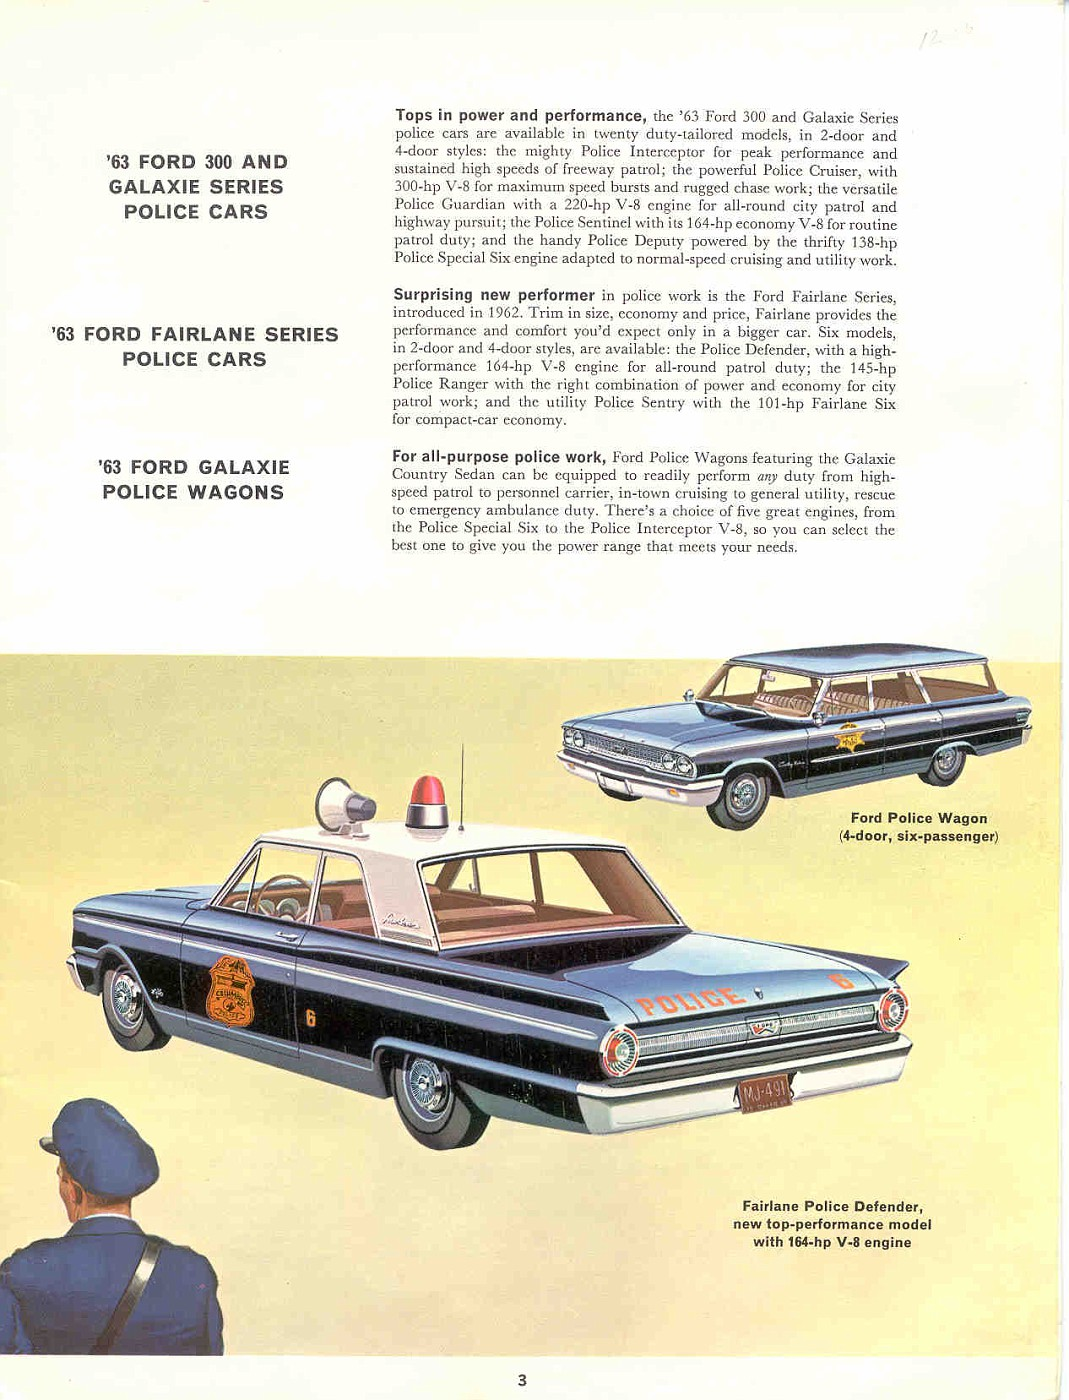 1963 Ford 03